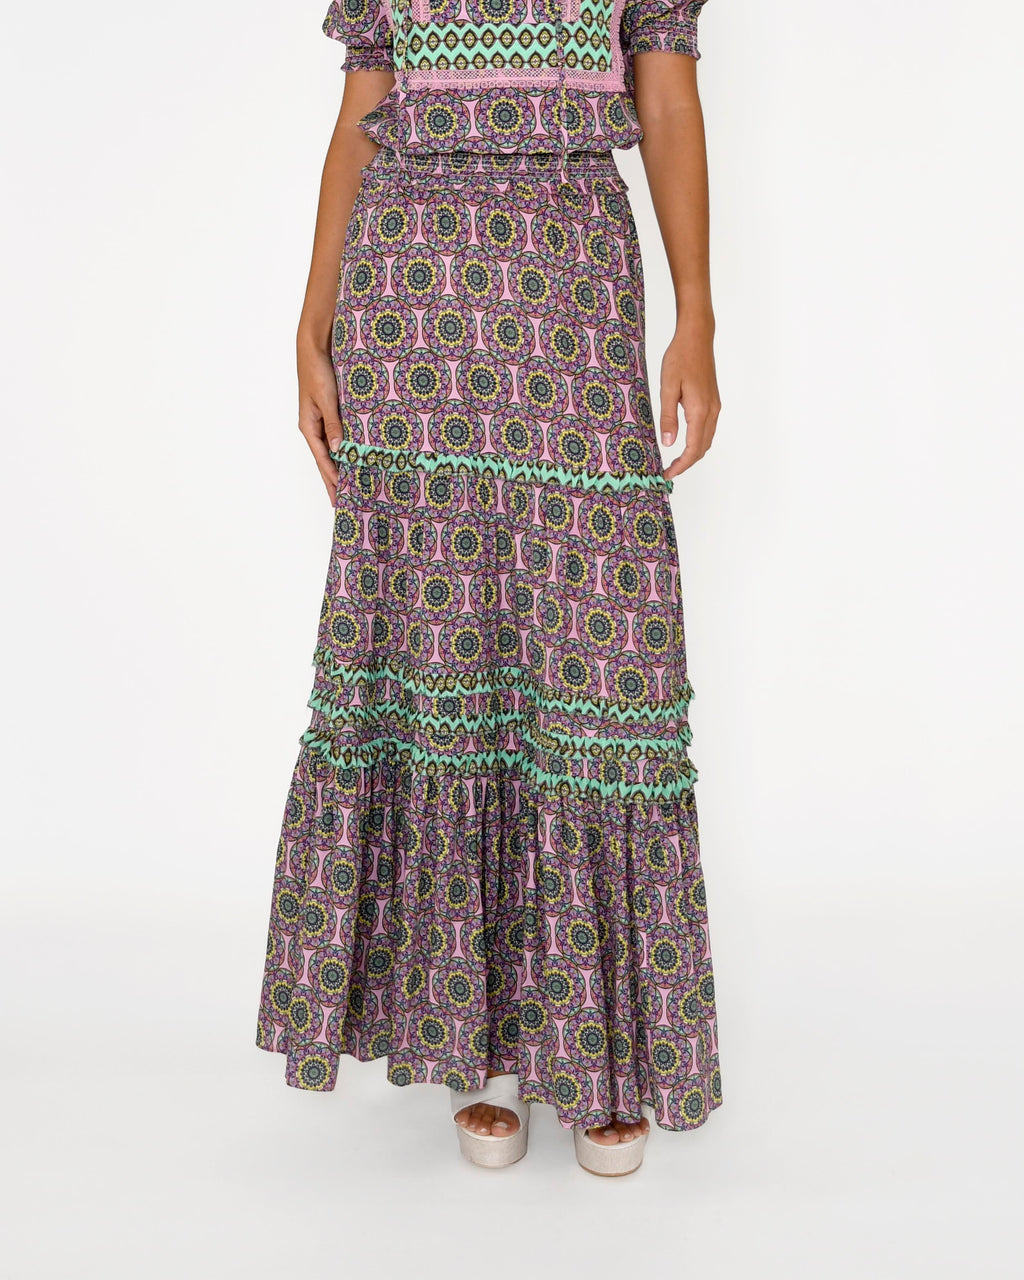 CS18703 - GLASSFLOWER MAXI SKIRT - bottoms - skirts - Our glassflower maxi skirt features our new bold print, a smocked waist and tiered ruffles throughout. Add 1 line break Stylist Tip: Pair with strappy sandals.